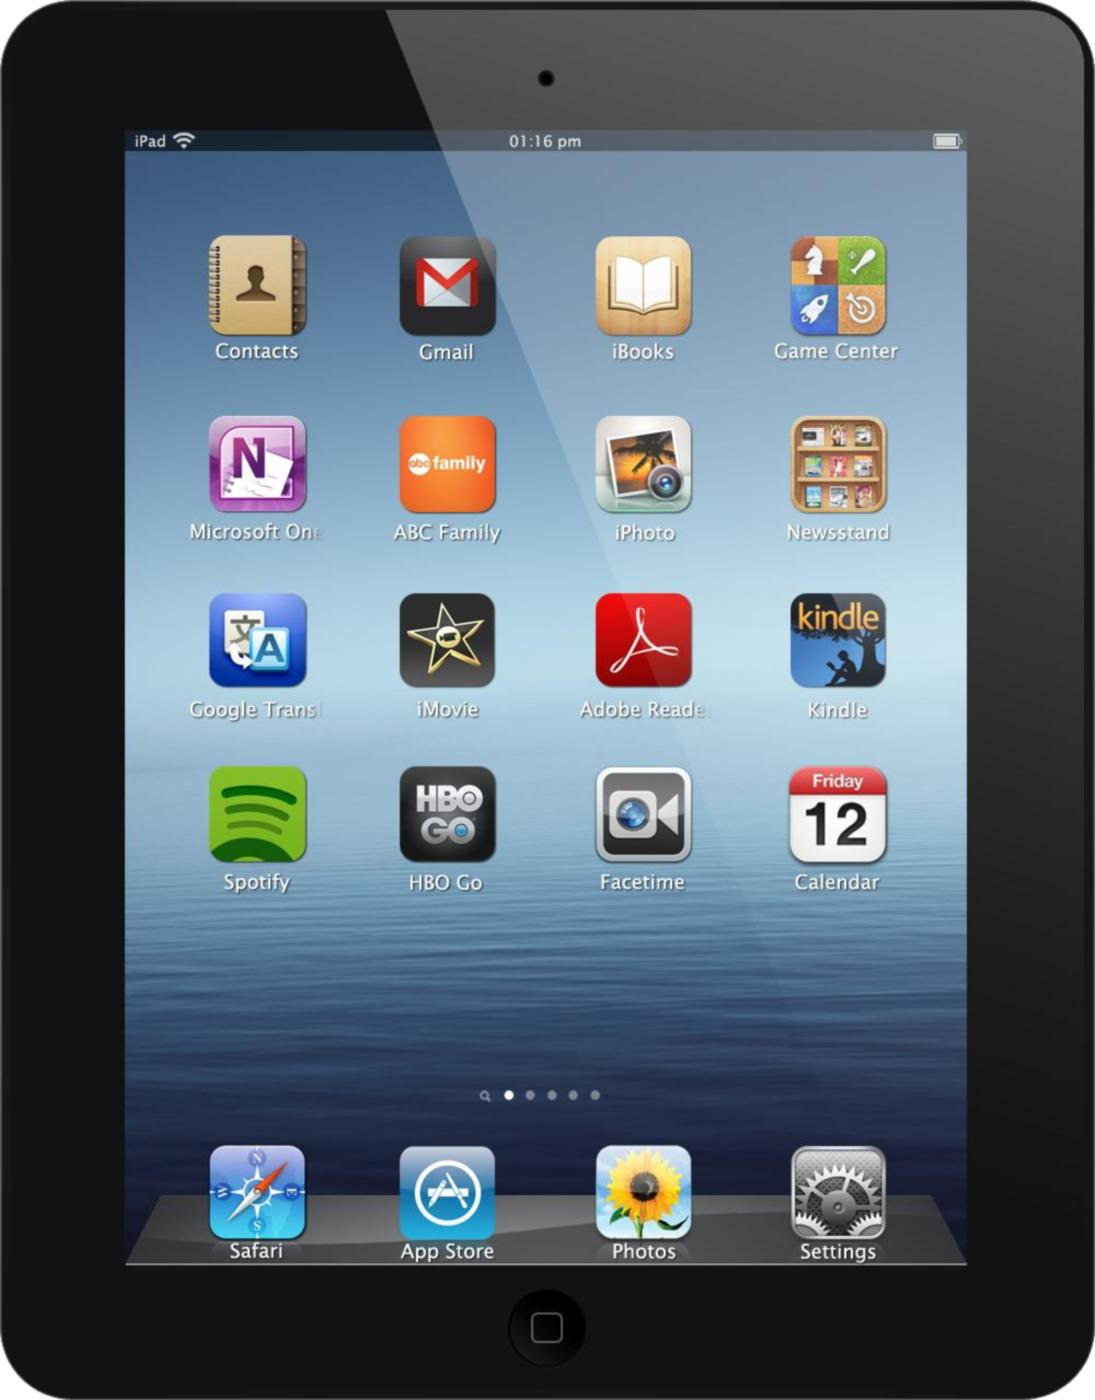 Apple iPad 4 WiFi + Cellular LTE